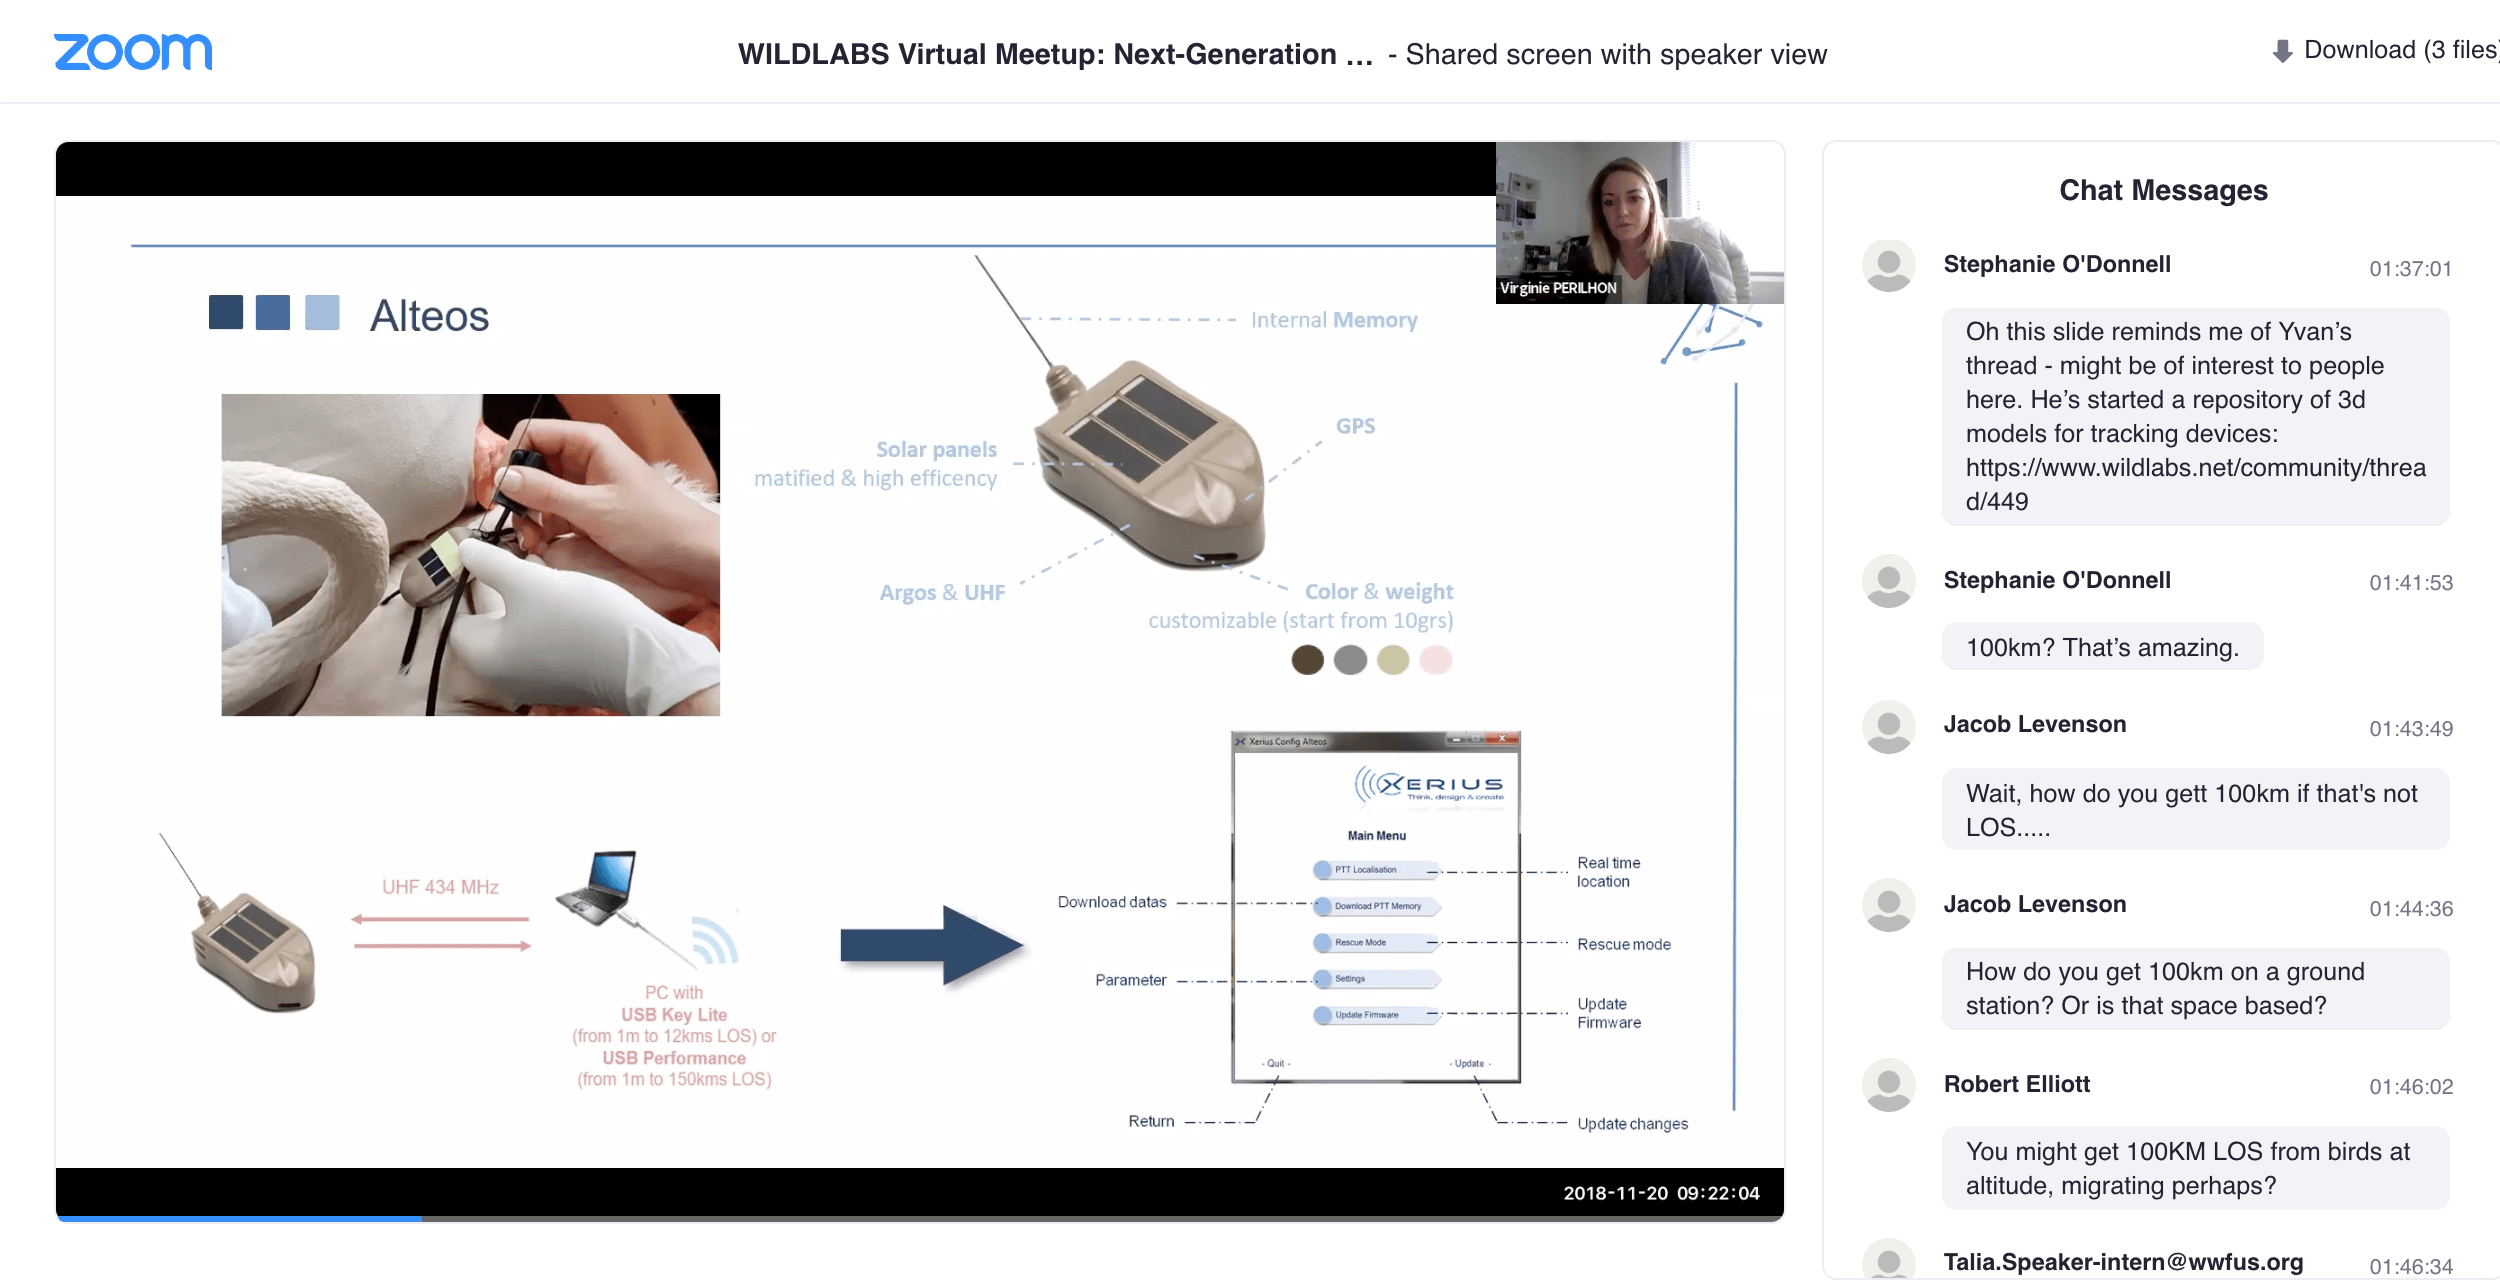 WILDLABS Virtual Meetup Link to Video Recording